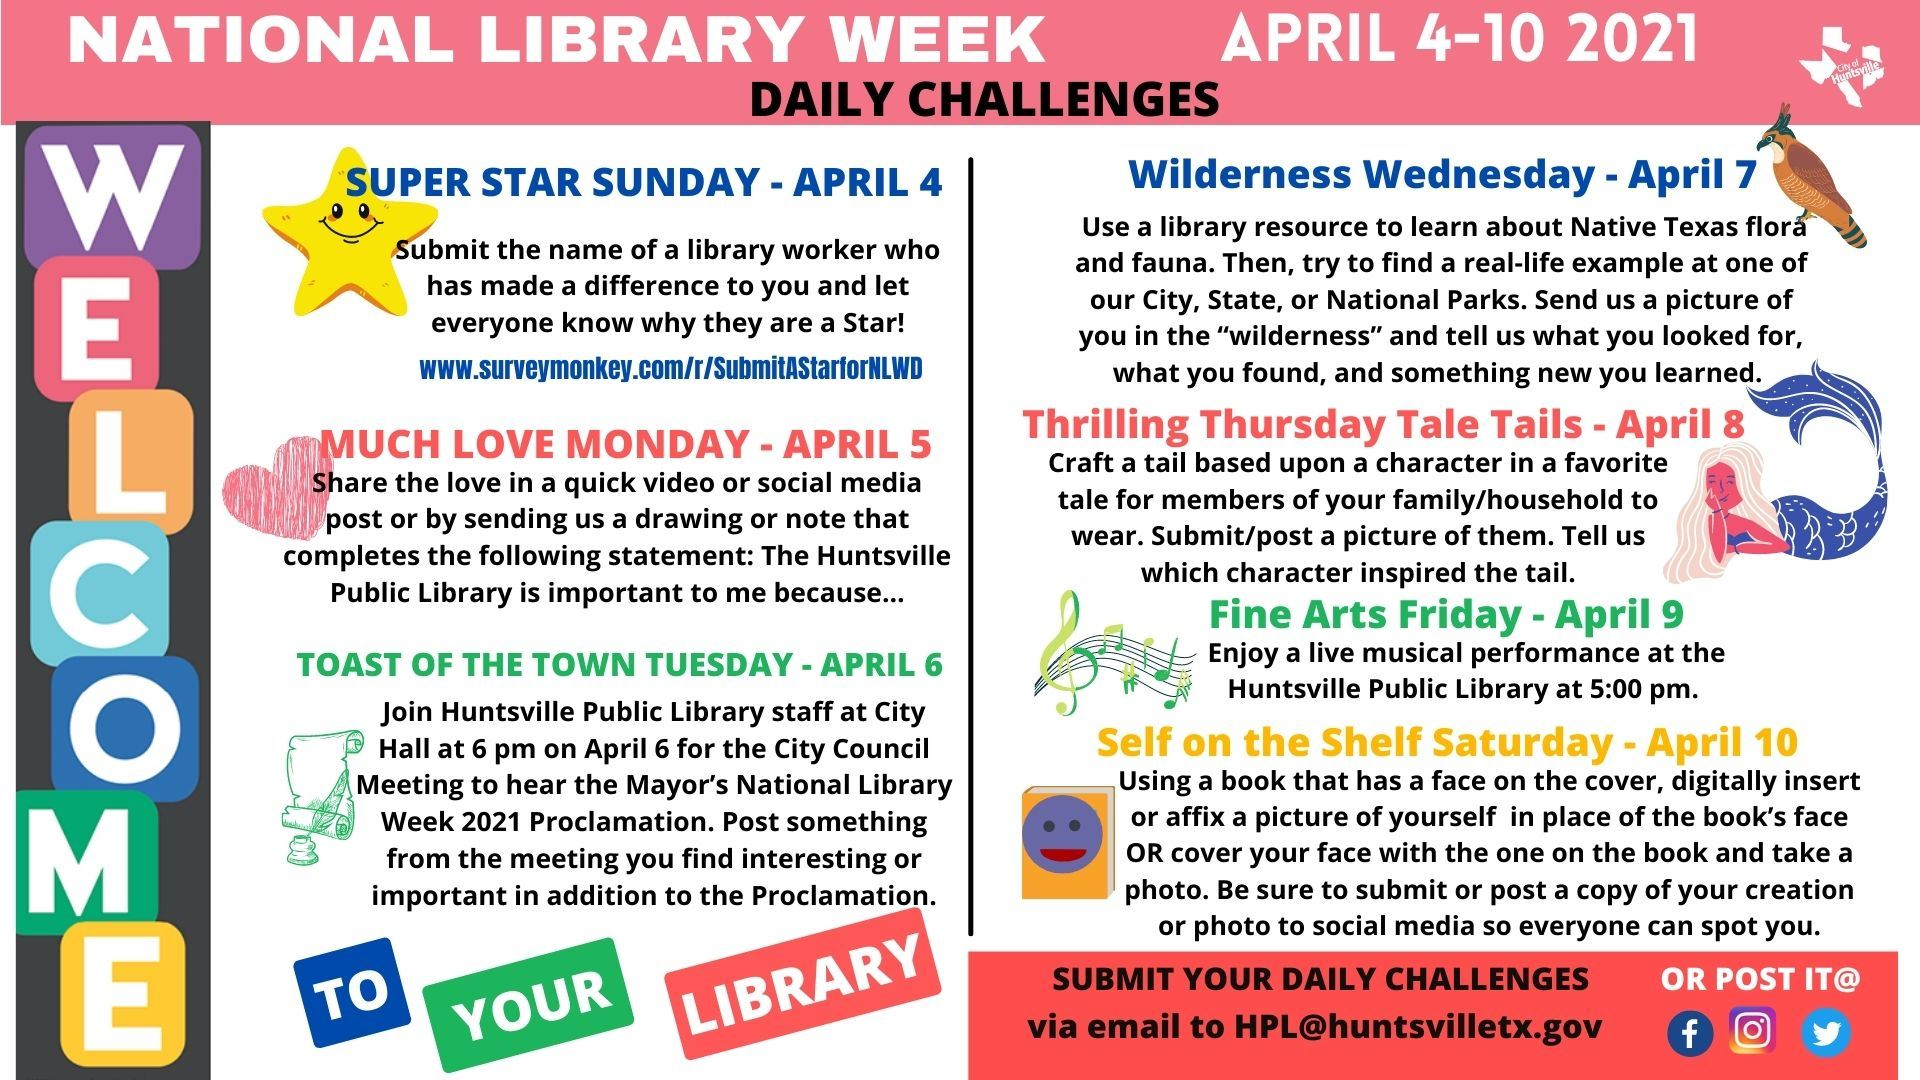 National Library Week Daily Challenges